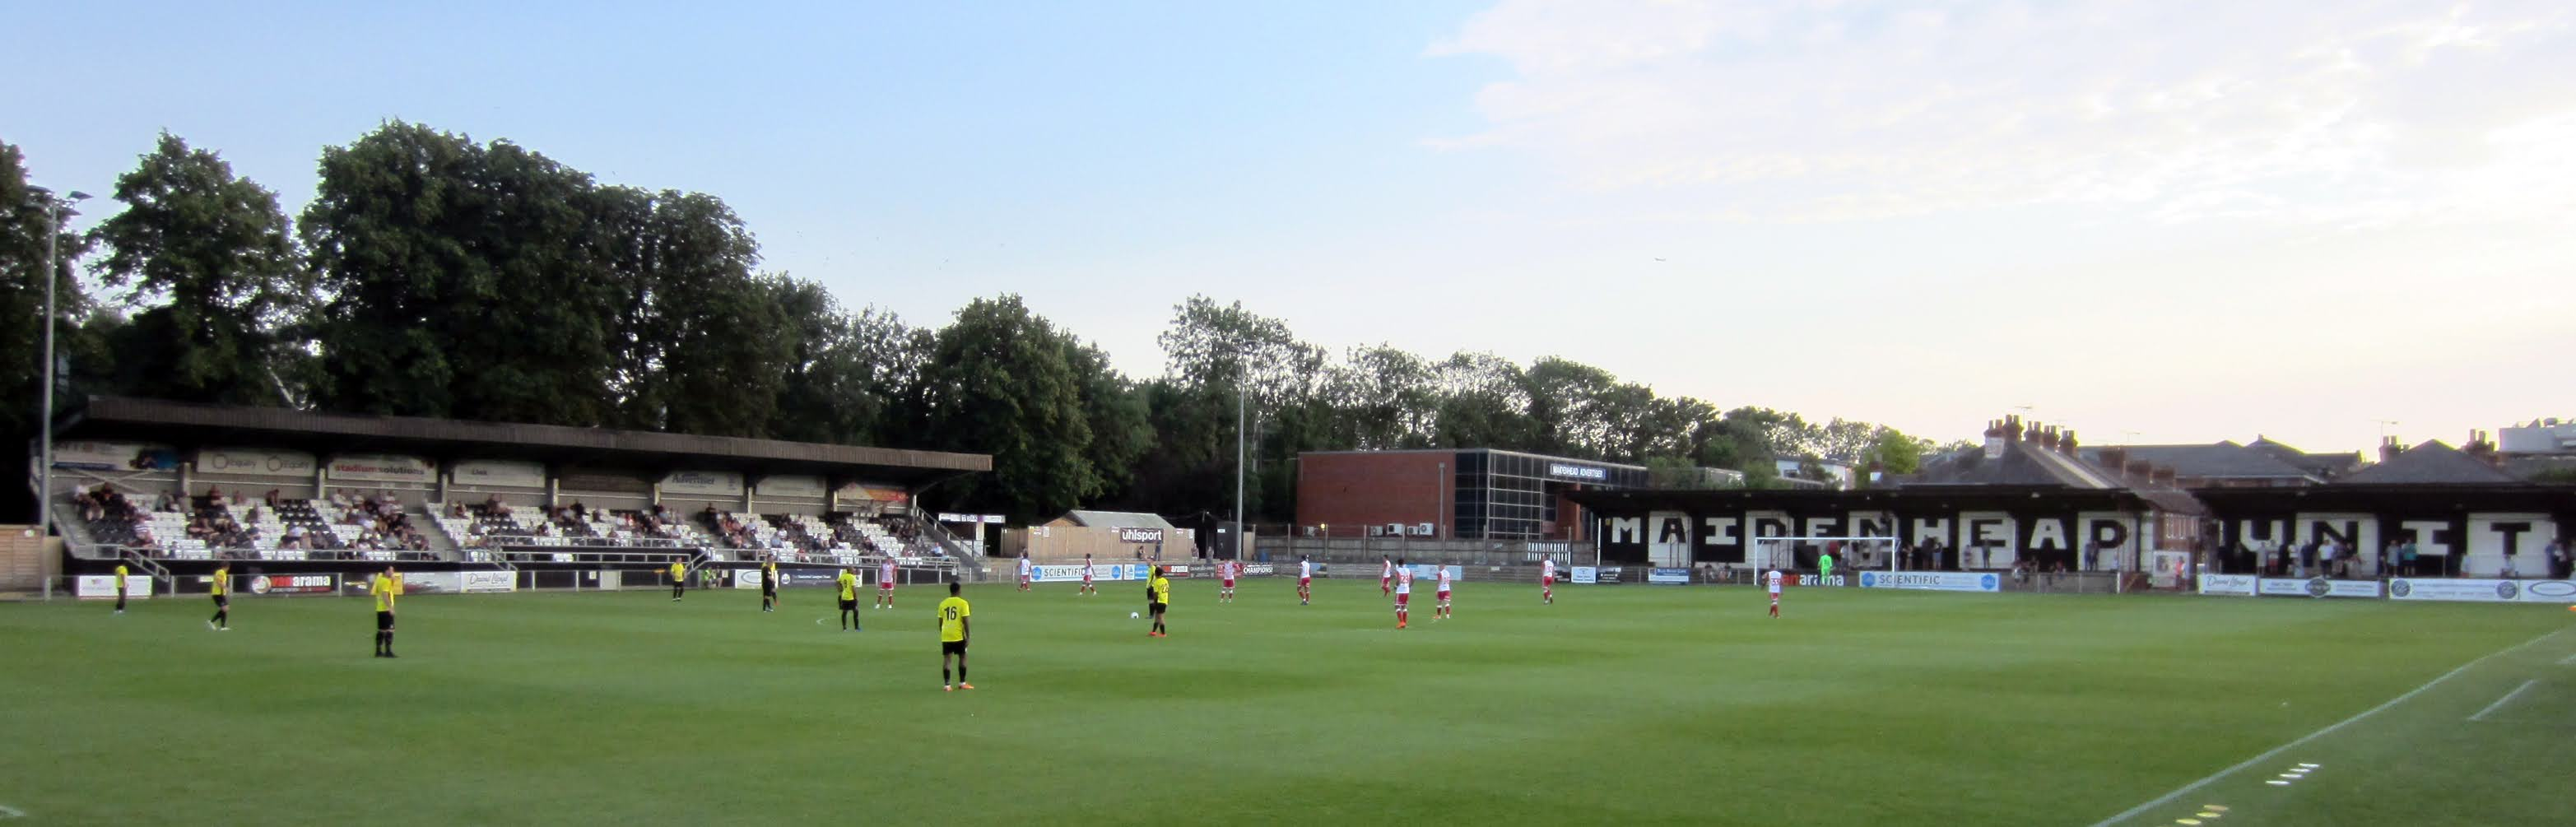 A view towards the main stand and Bell Road stand at York Road